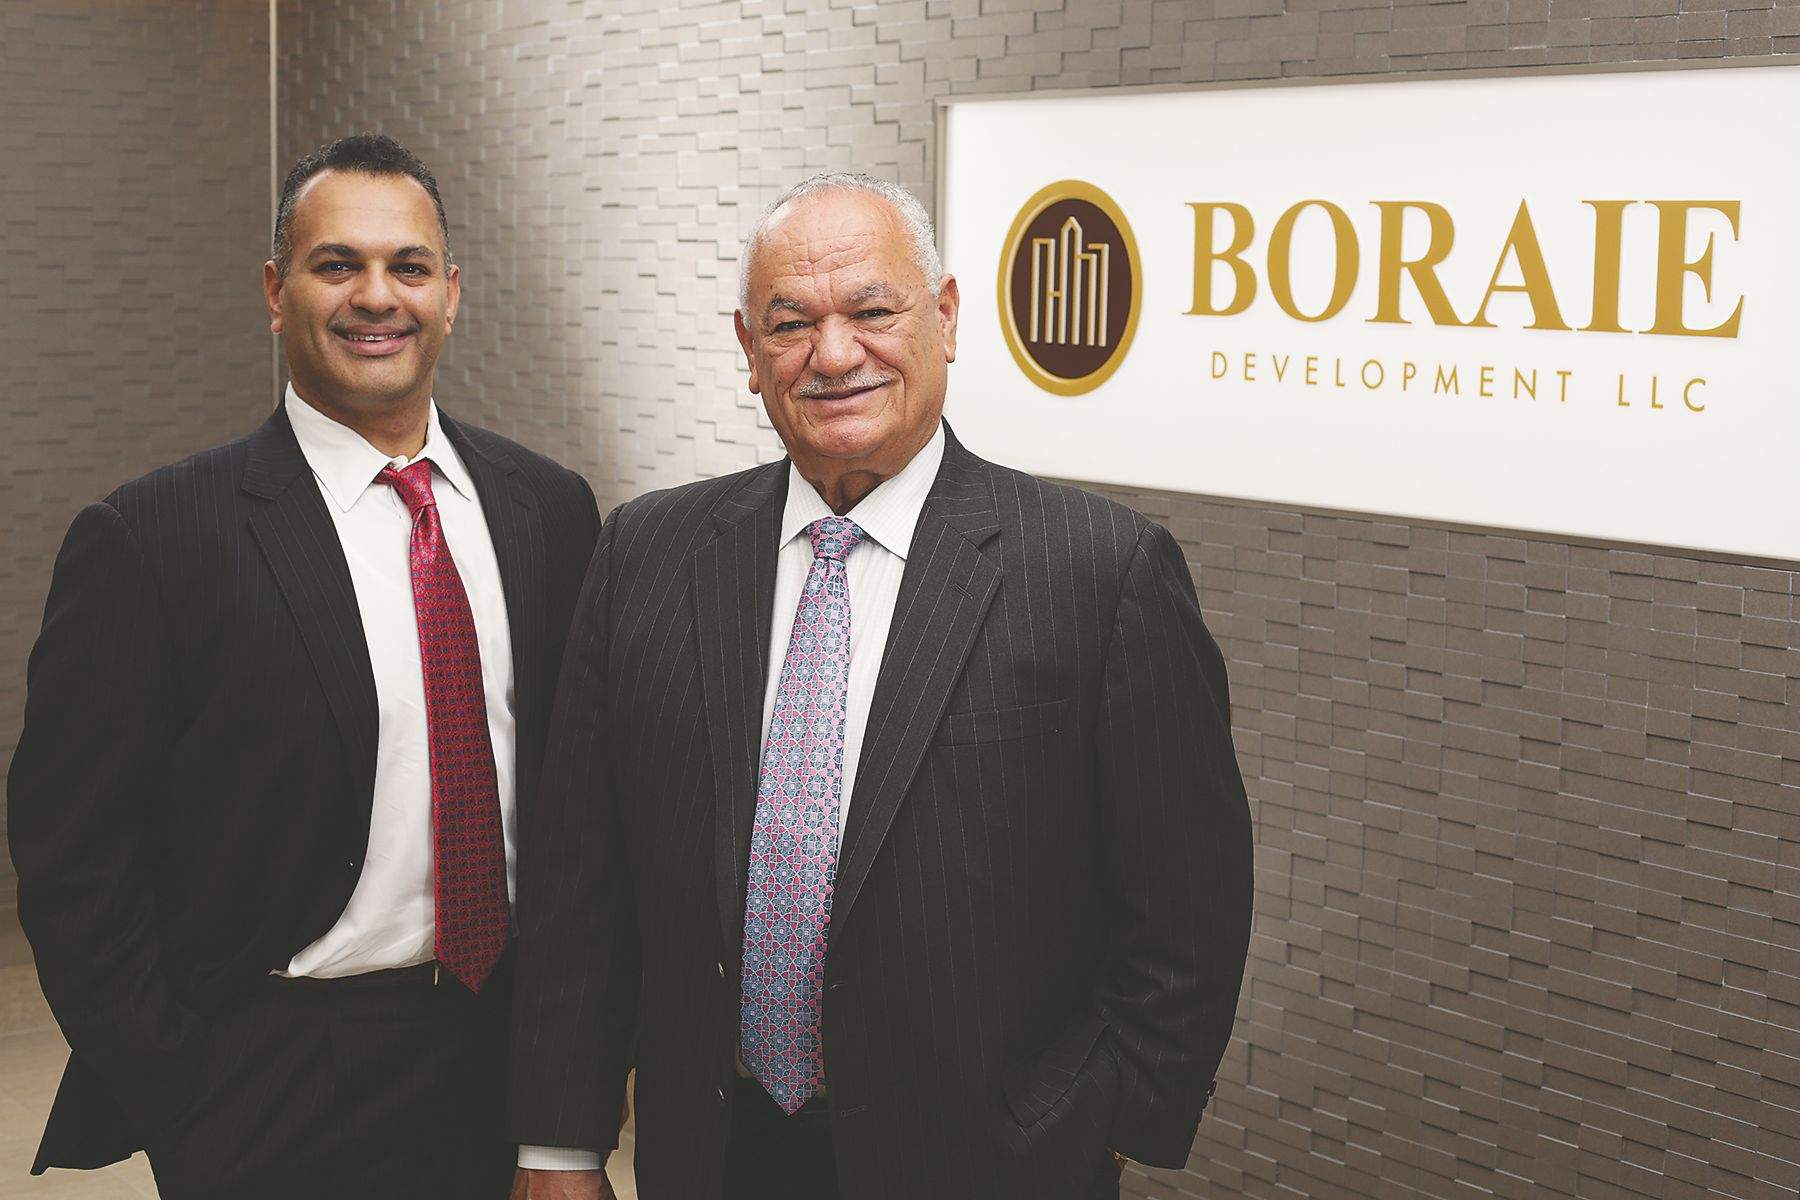 The patriarch of the long-running New Brunswick-based Boraie Development firm is proving it can be a force throughout the state. It just had a long-awaited groundbreaking in Newark for its Rector Street project (a 23-story residential tower that will be Newark's first new high-rise in decades) and received a state incentive for a mixed-use project in Atlantic City. And Boraie is still going strong in New Brunswick, where it just opened The Aspire, a high-end luxury apartment building. Boraie is developing more than just buildings. In Newark, Boraie hopes to use workers from IMPACT Newark, a program designed to help minorities, women and veterans get jobs in the construction industry. In New Brunswick, Omar — trained originally as a biochemist — donated $1.5 million to establish the Omar Boraie Chair in Genomic Science at Rutgers.